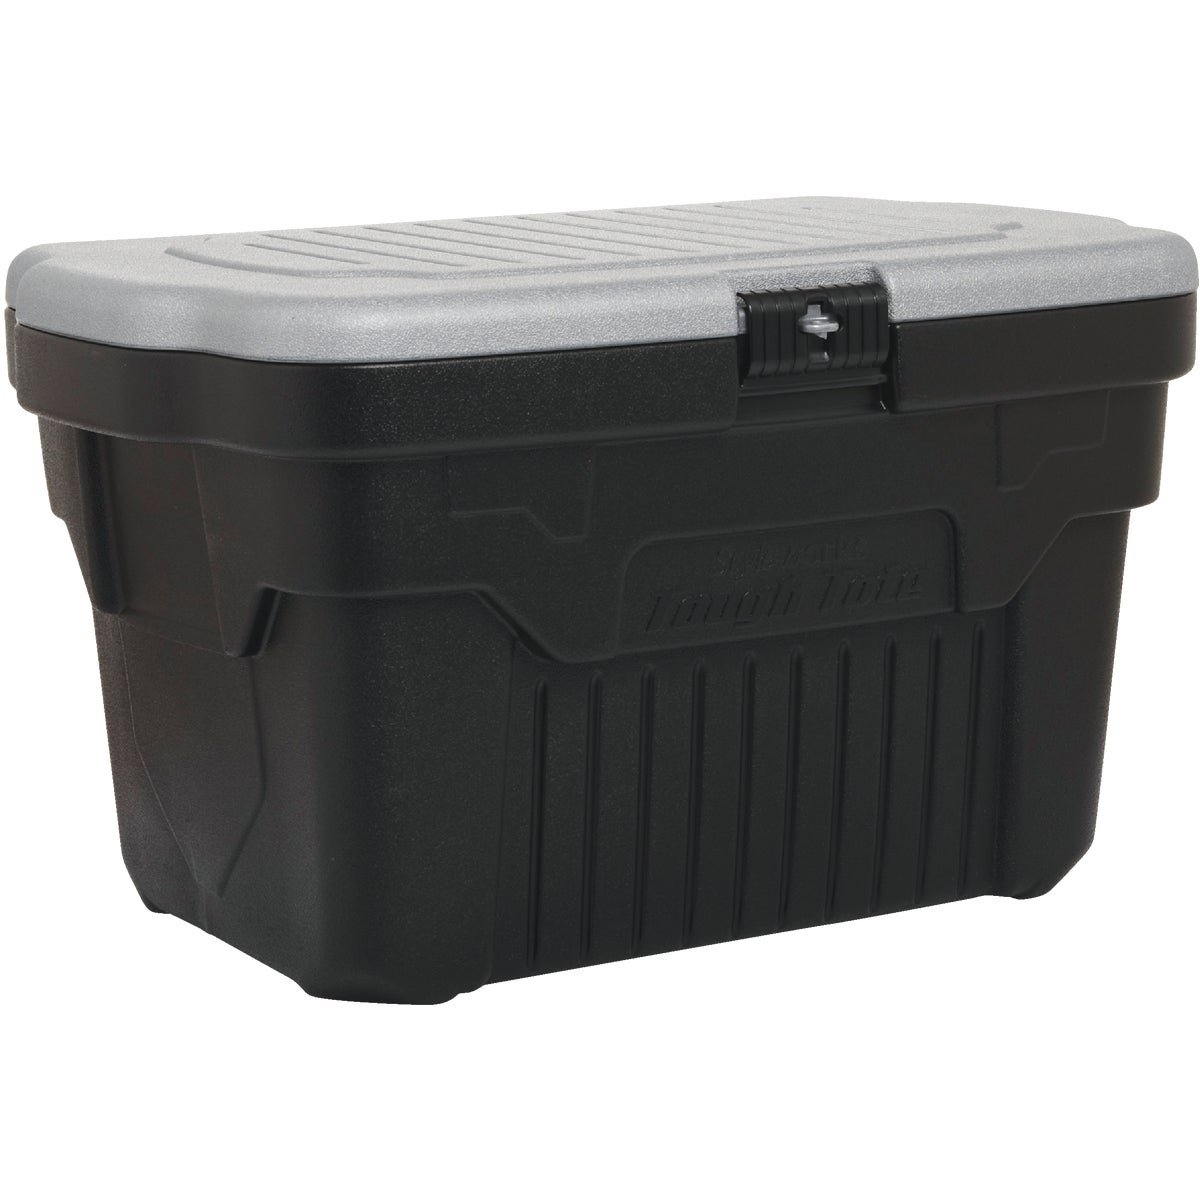 25 GALLON TOUGH TOTE - 00305 by Western Industries